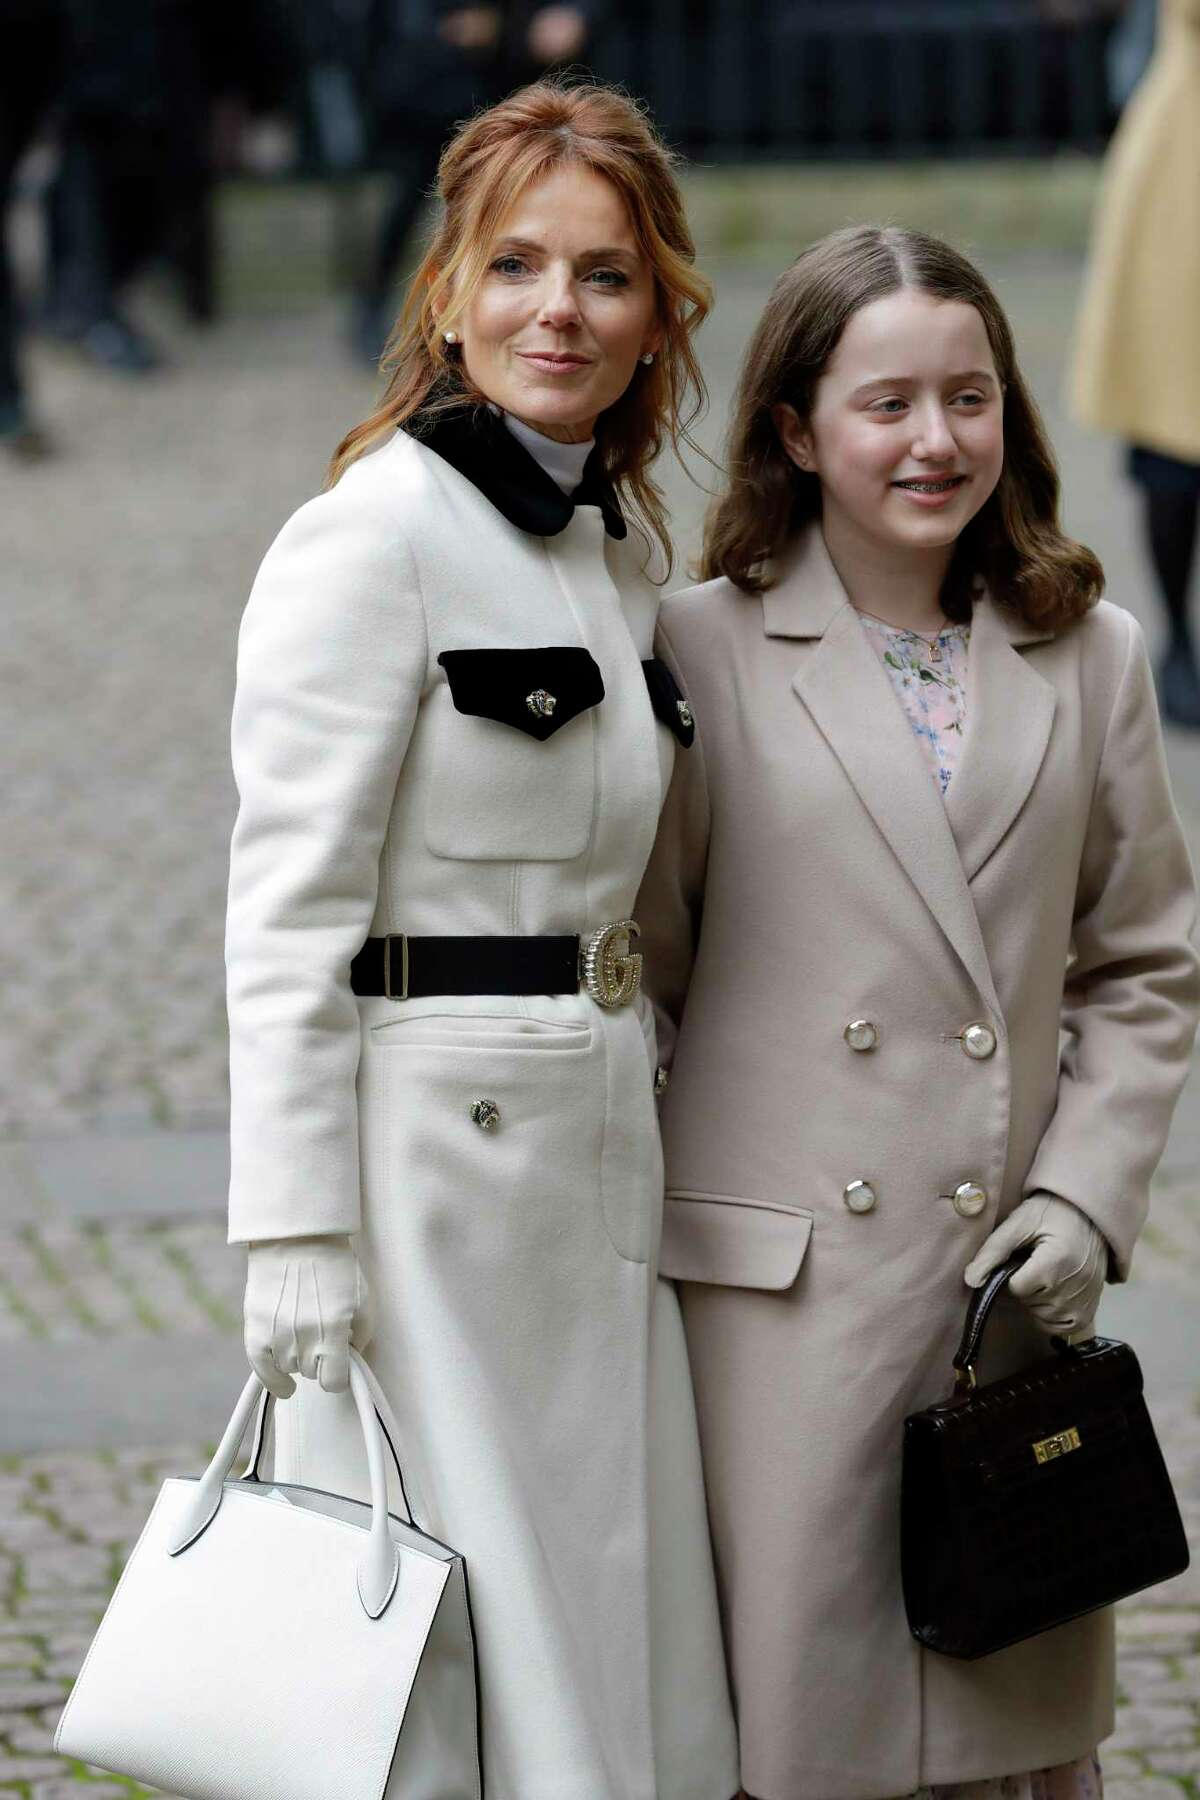 Singer Geri Halliwell, former member of girl group the Spice Girls, arrives with her daughter Bluebell Madonna Halliwell to attend the annual Commonwealth Day service at Westminster Abbey in London, Monday, March 9, 2020. The annual service, organised by the Royal Commonwealth Society, is the largest annual inter-faith gathering in the United Kingdom. (AP Photo/Kirsty Wigglesworth)